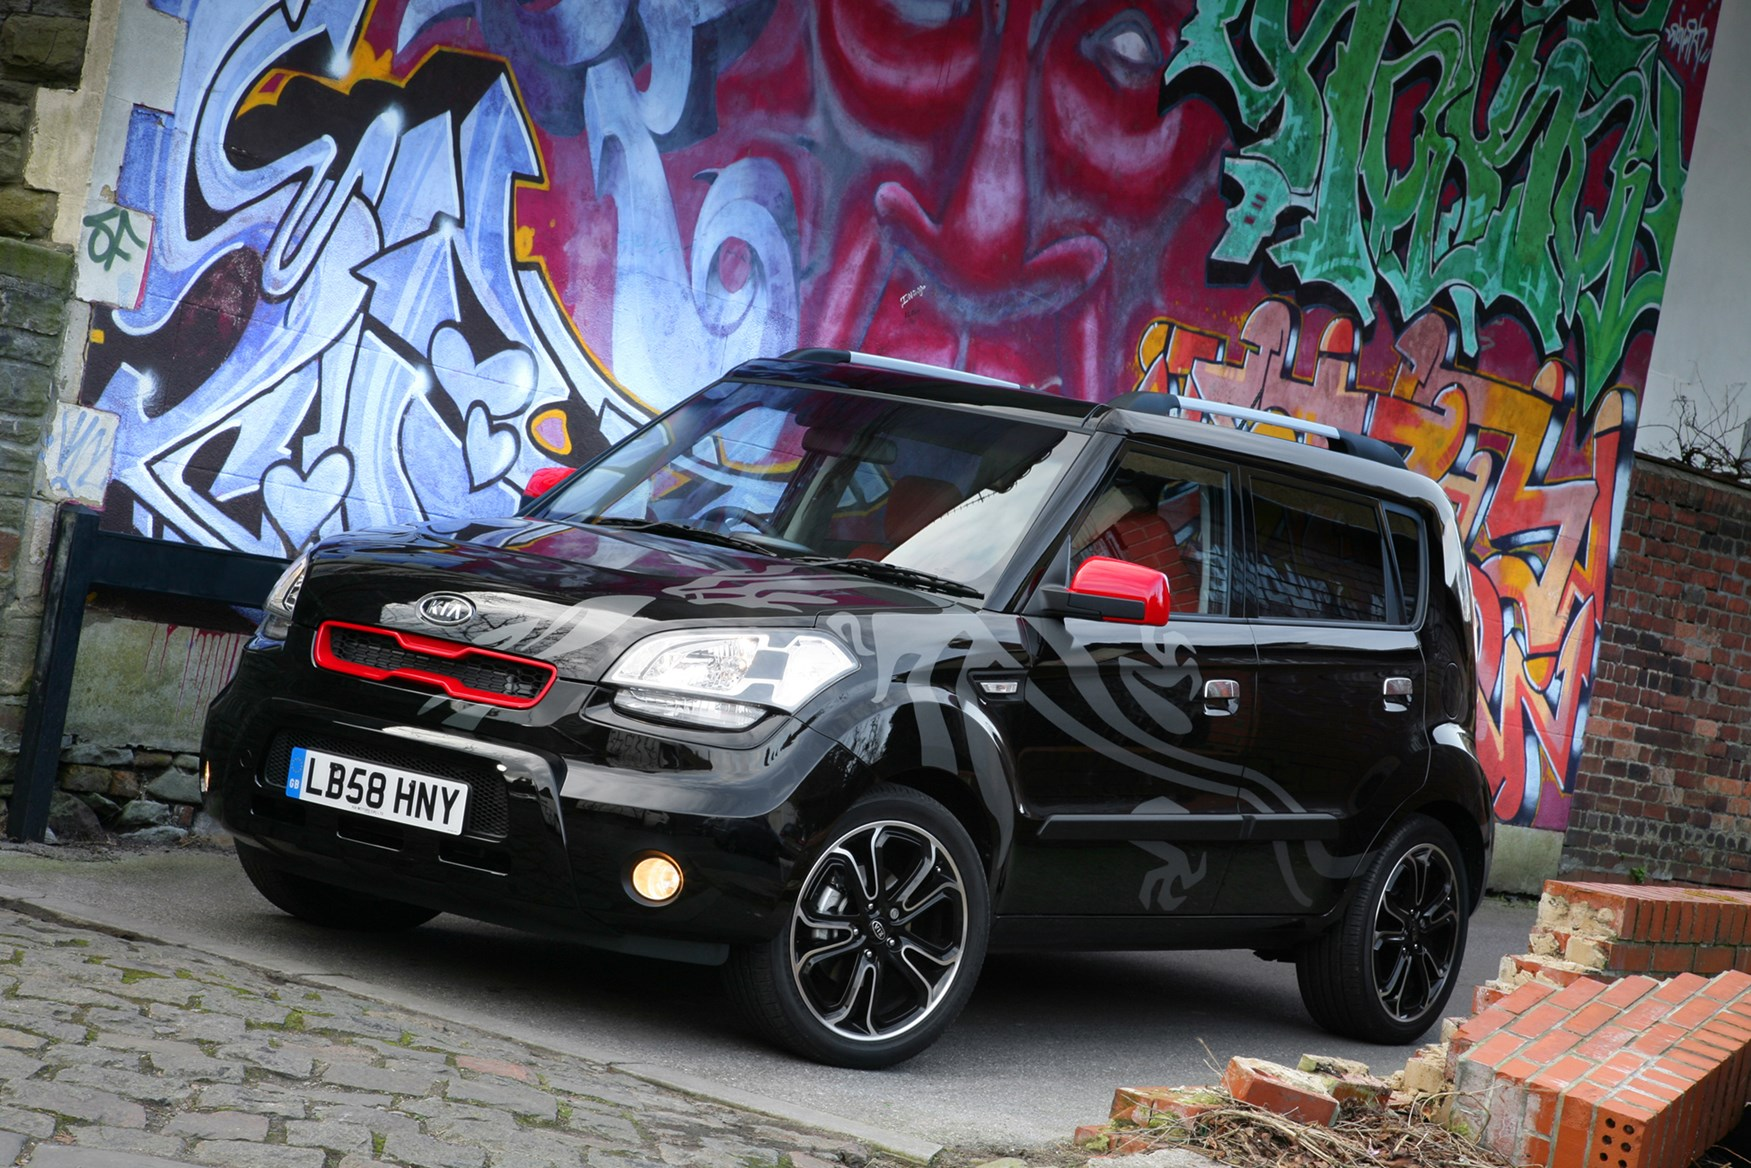 Used Kia Soul Hatchback (2009 - 2013) Review | Parkers